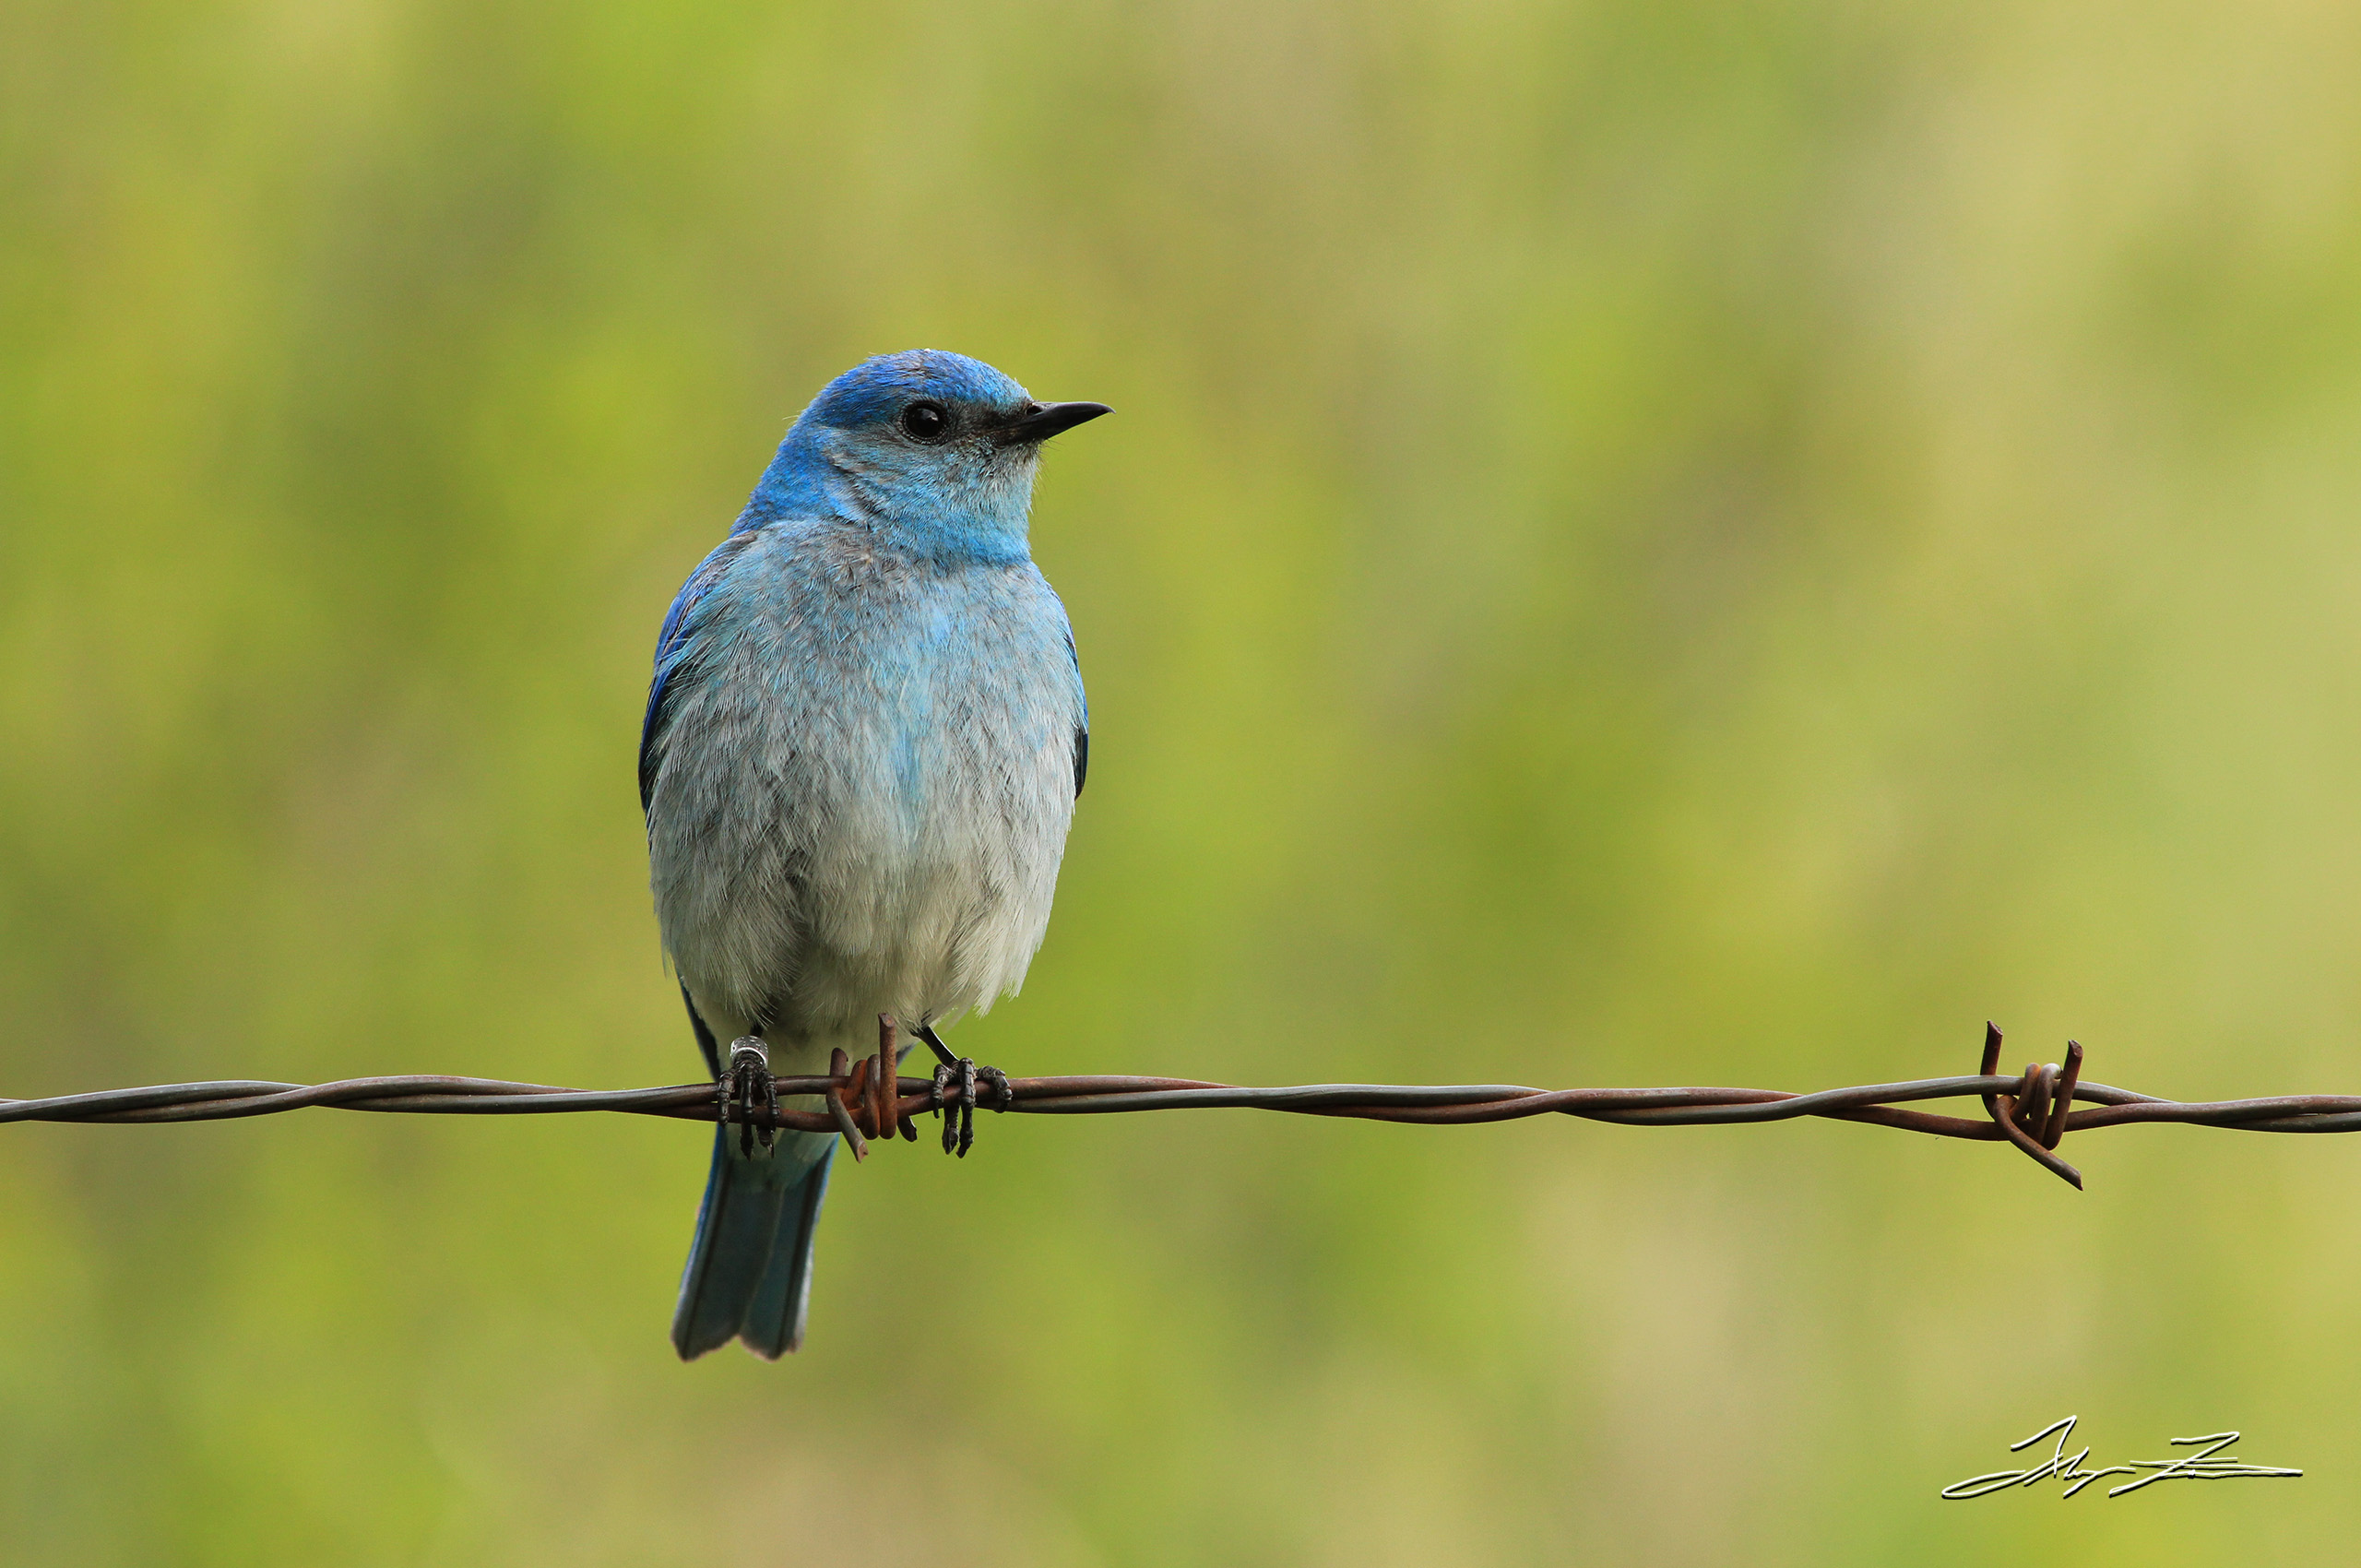 A bluebird, captured by photographer and DPUB student Alayna Fairman